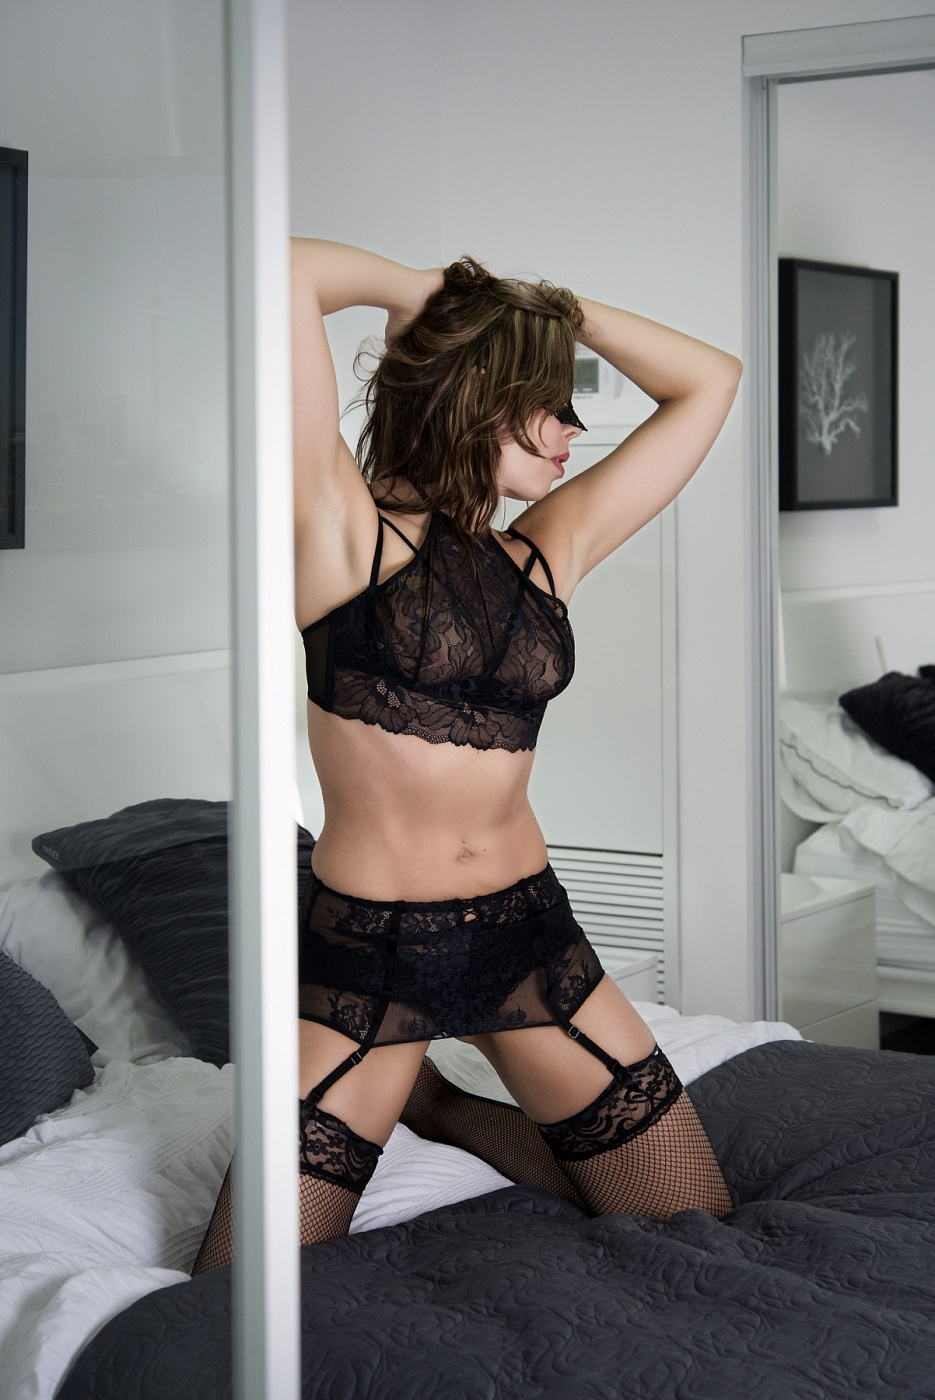 Bray park escorts and private escorting services